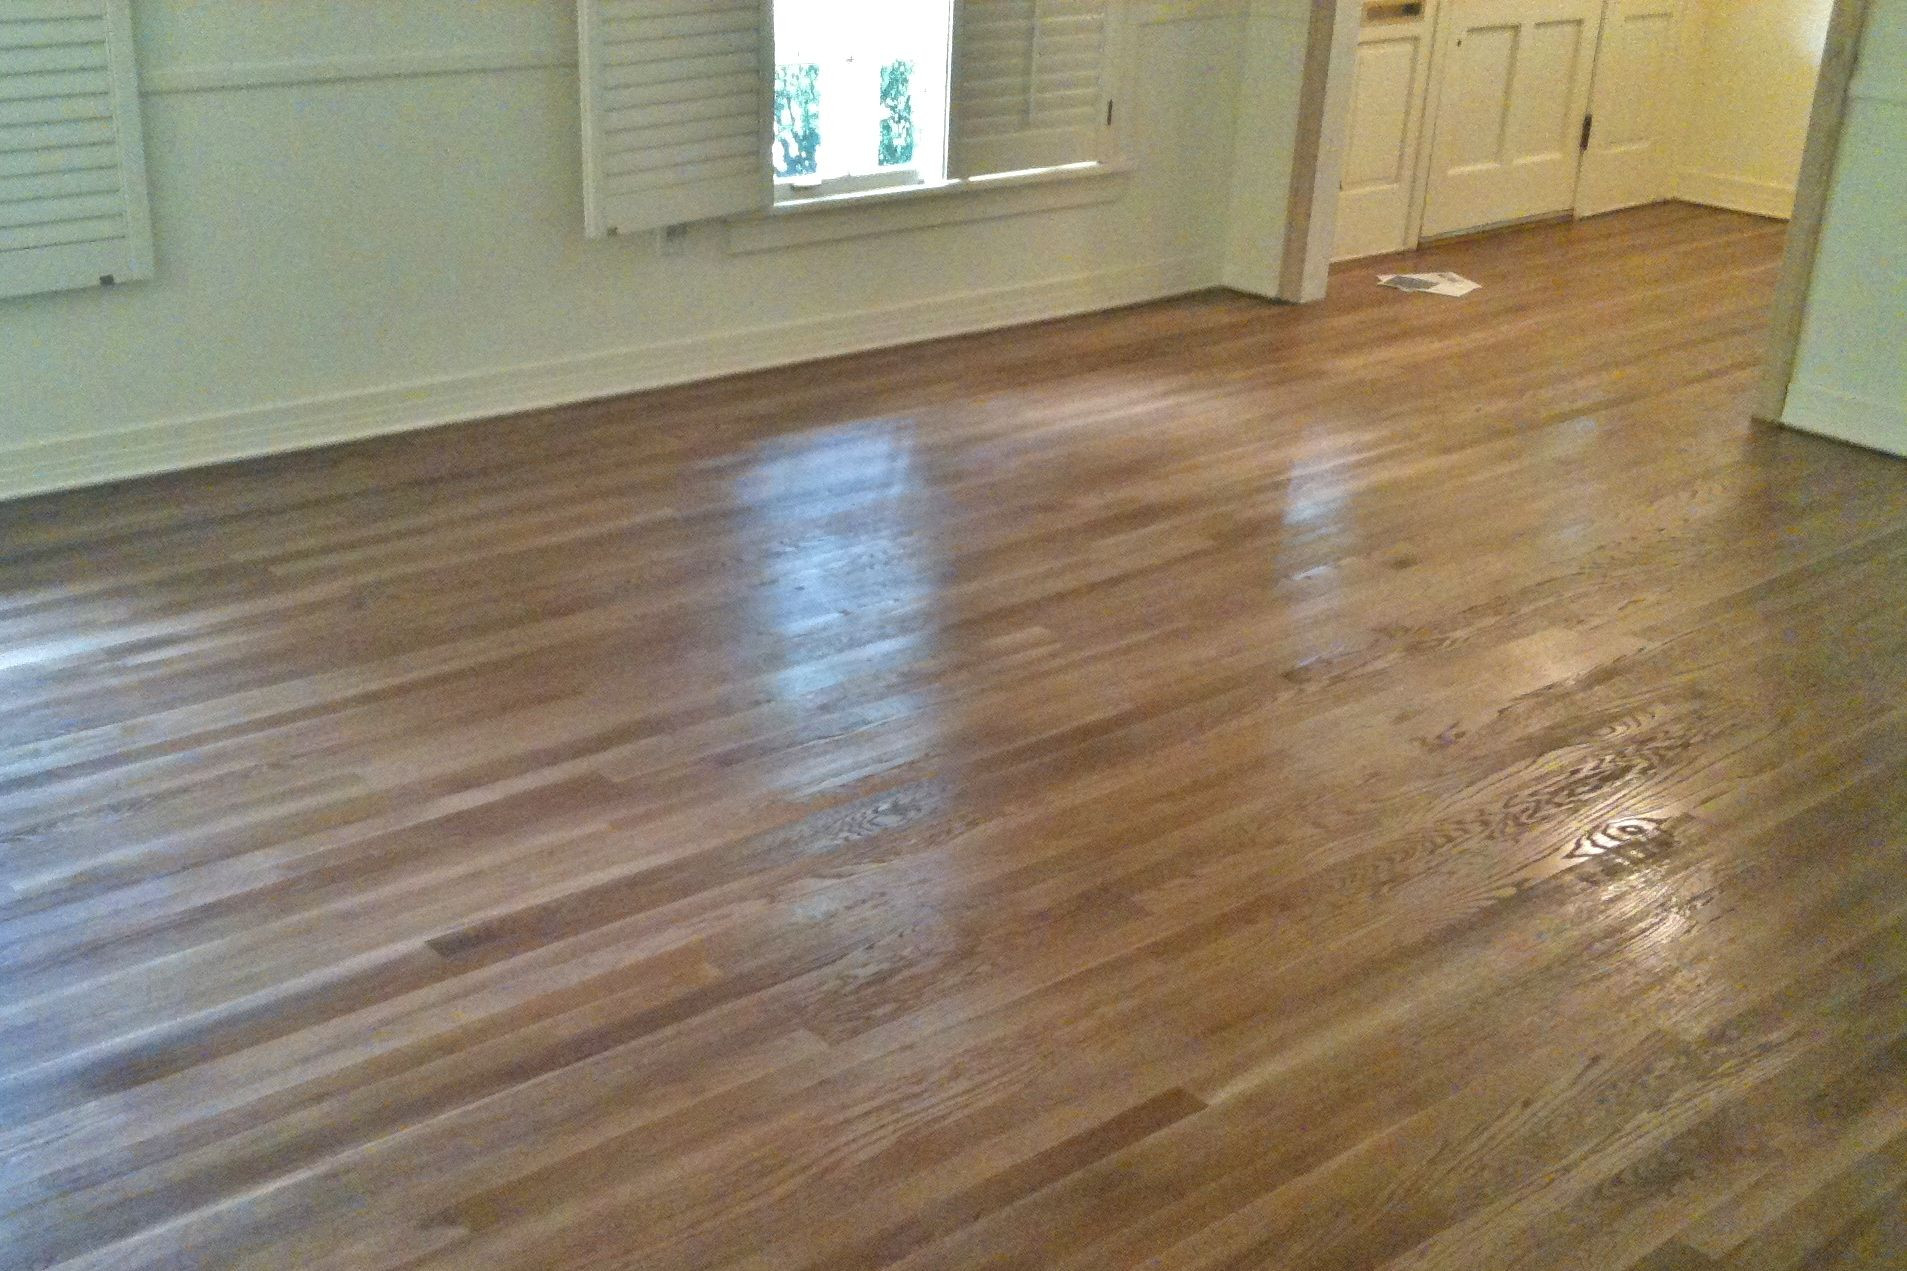 minwax hardwood floor cleaner of oak meet special walnut home design pinterest flooring in minwax special walnut stain on oak hardwood floors